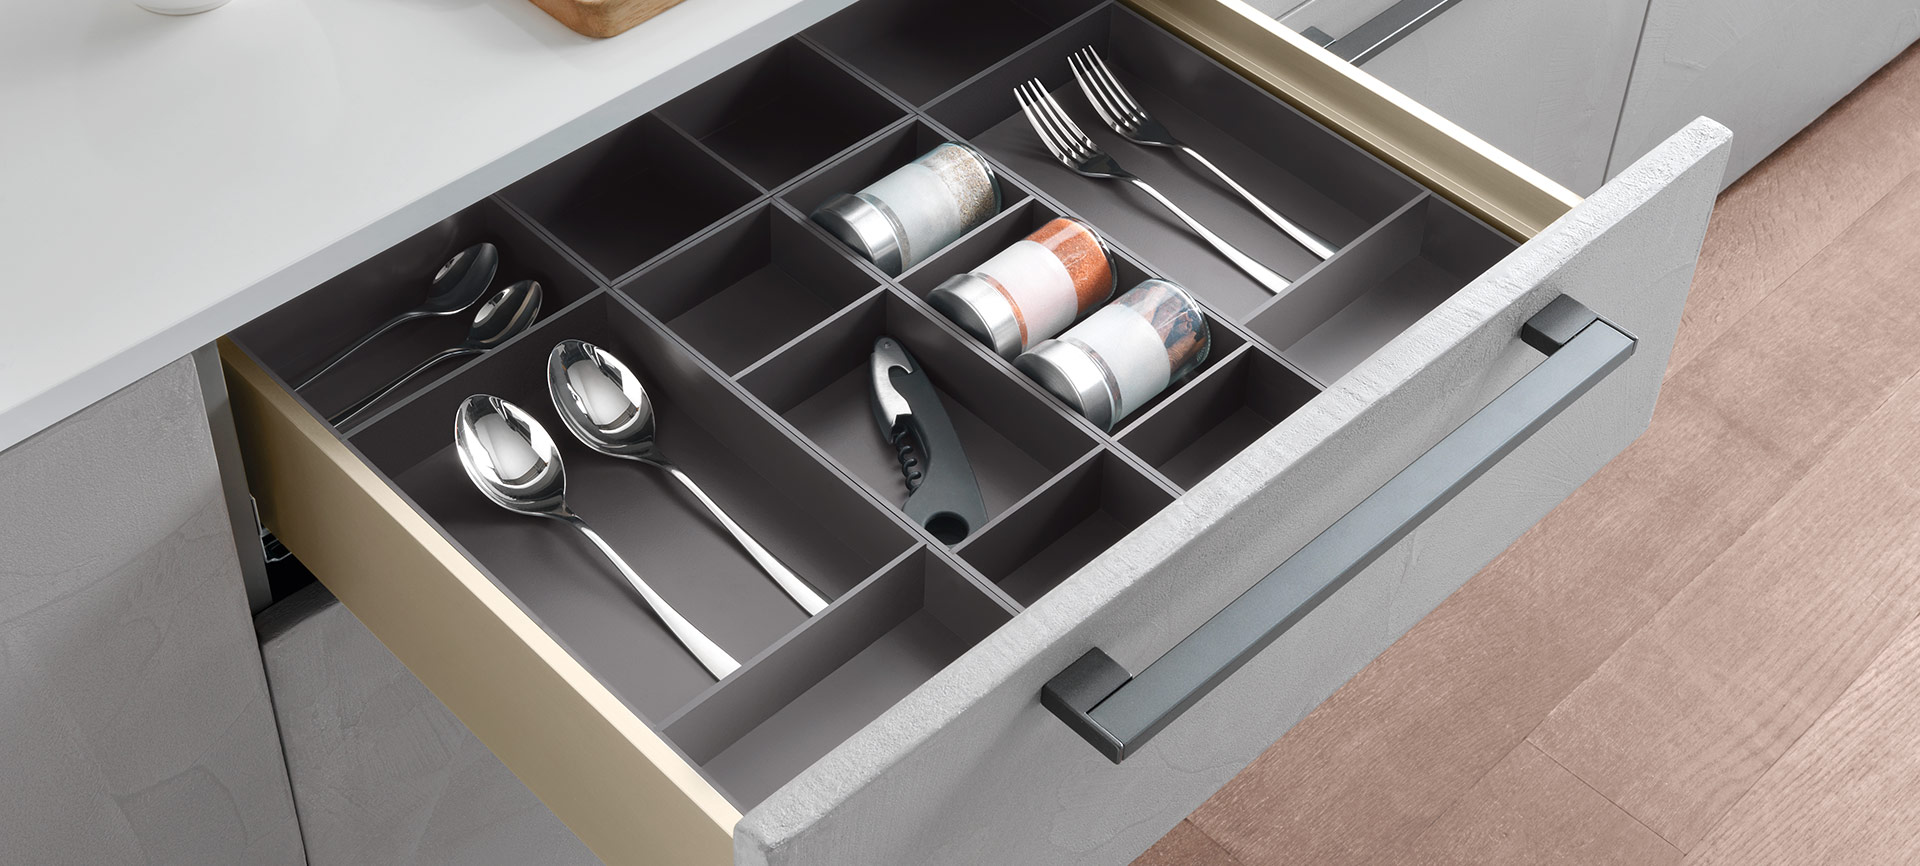 Split, the system of dividing and storage compartments for the freest organisation